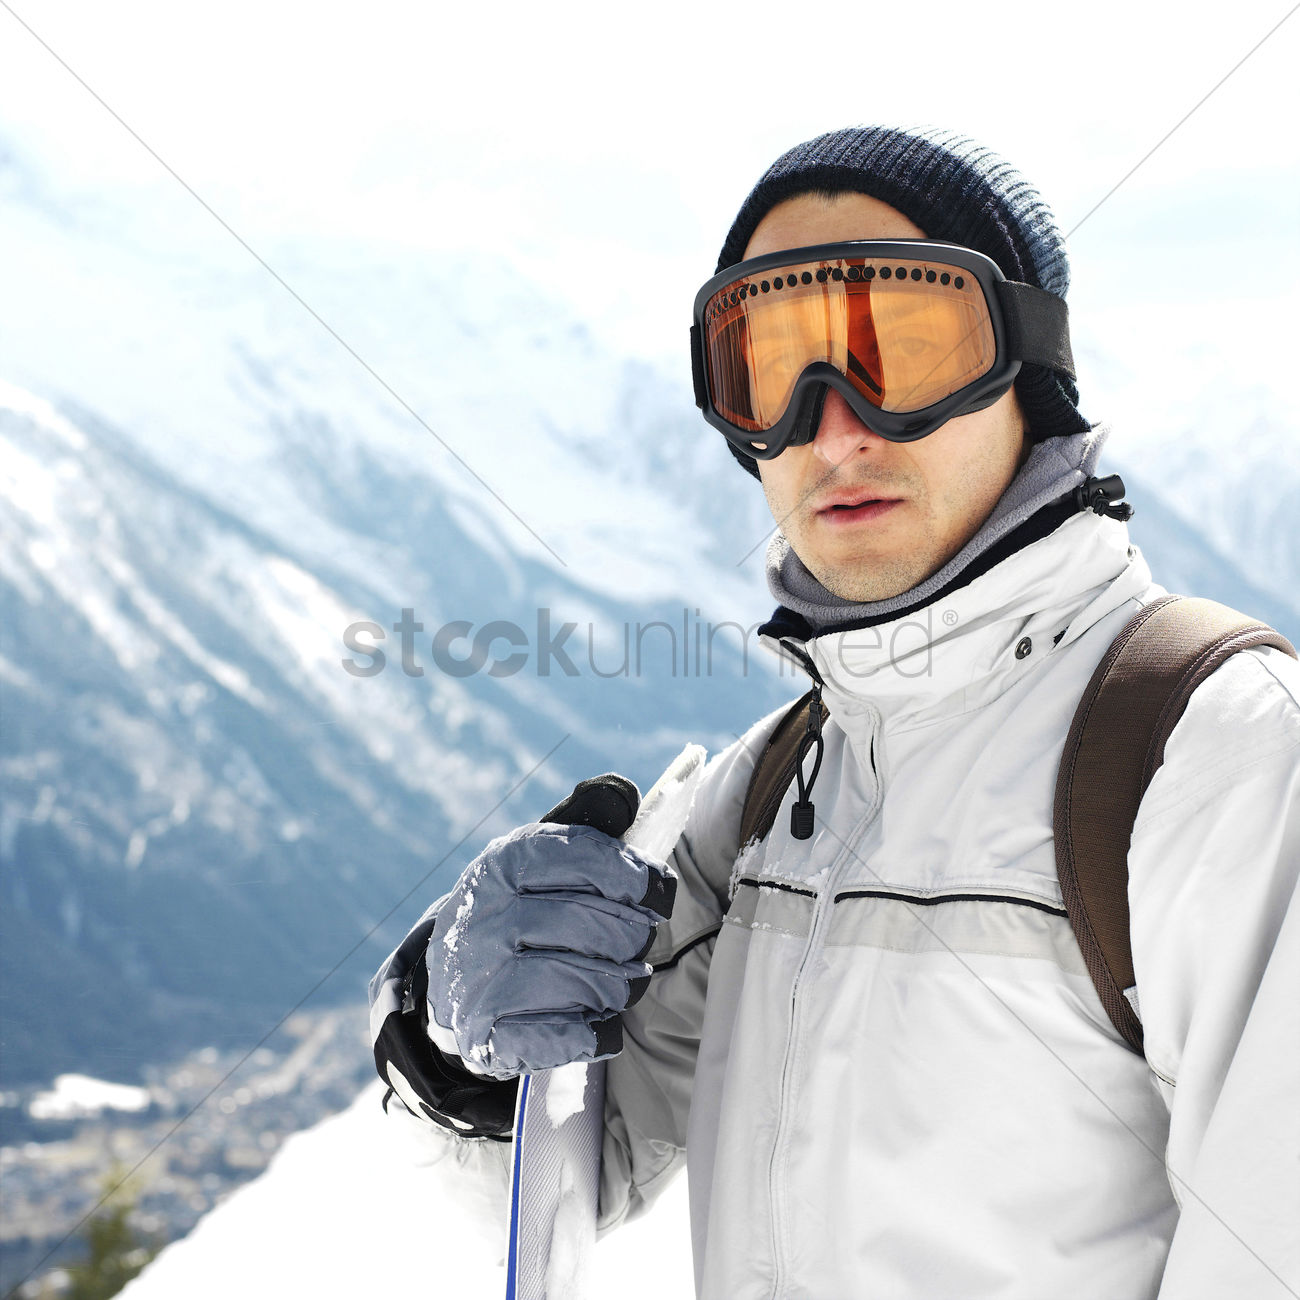 in warm clothing and ski goggles holding snowboard